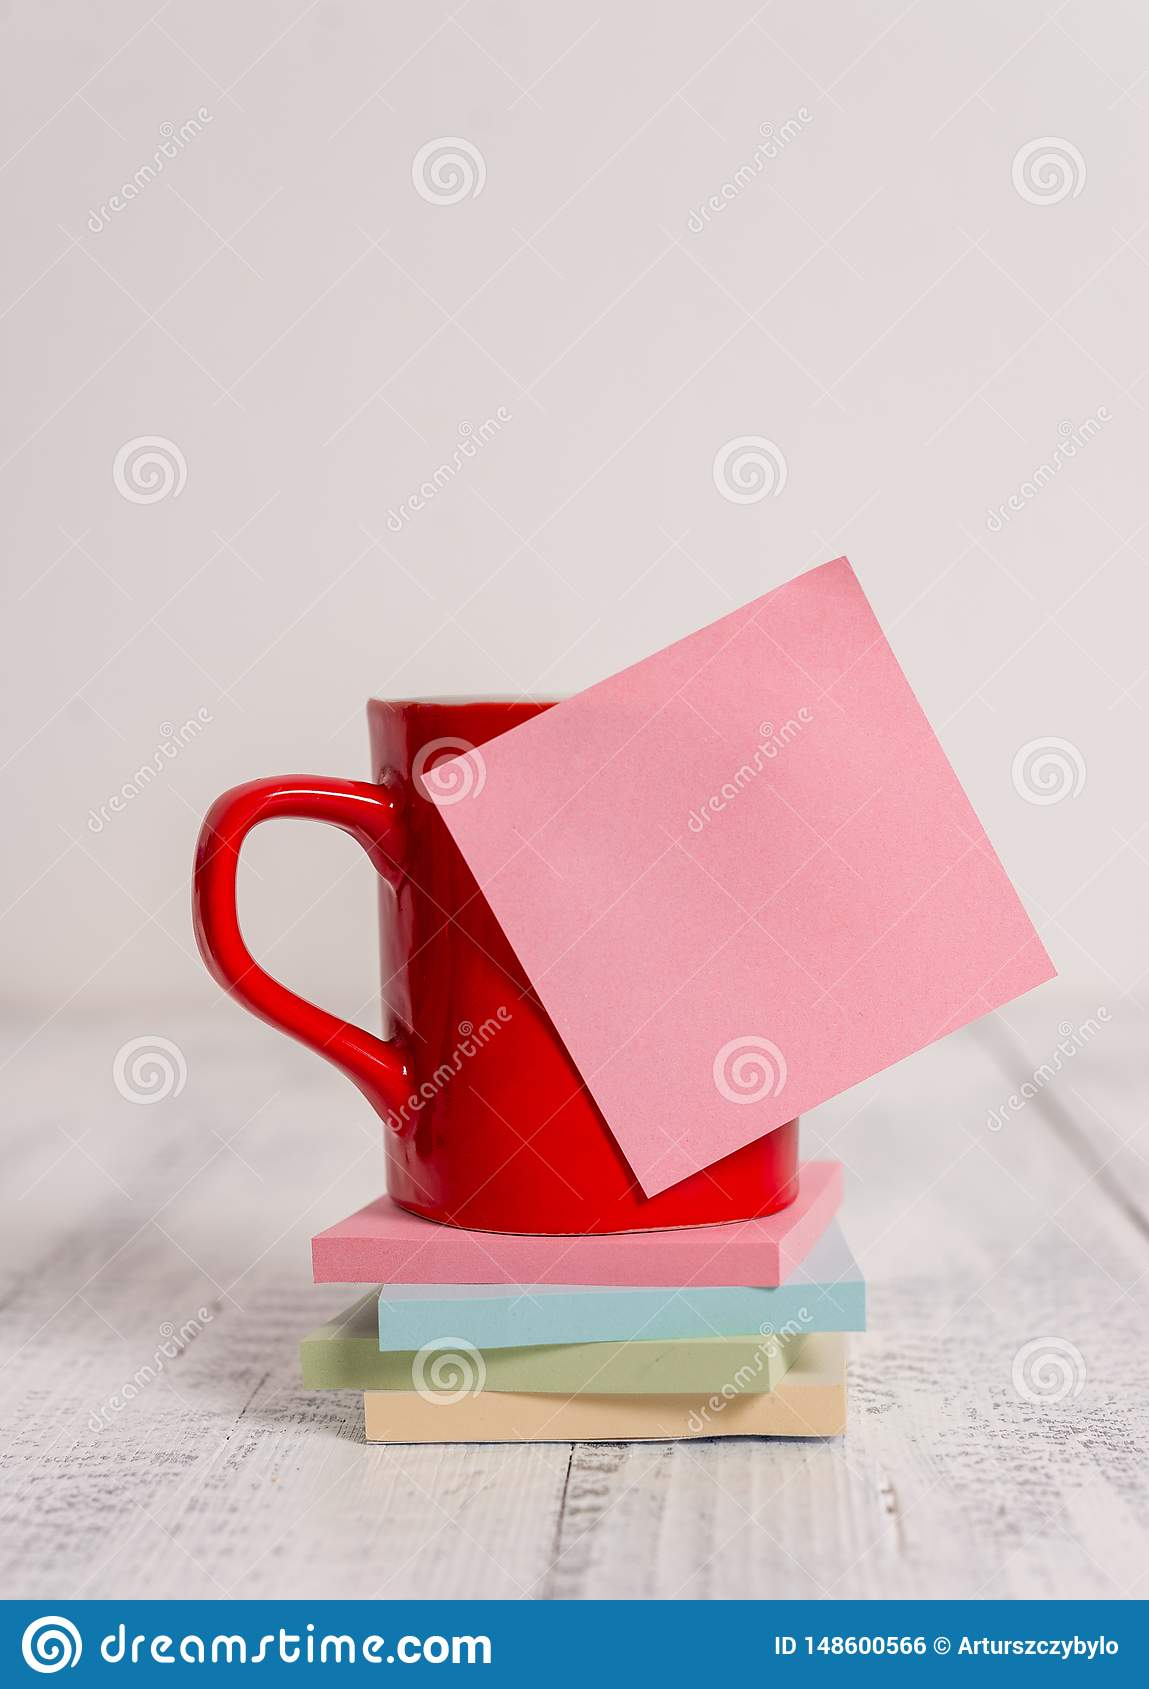 Front view coffee cup mug hot drinks blank colored sticky note stacked note pads lying retro vintage rustic old table